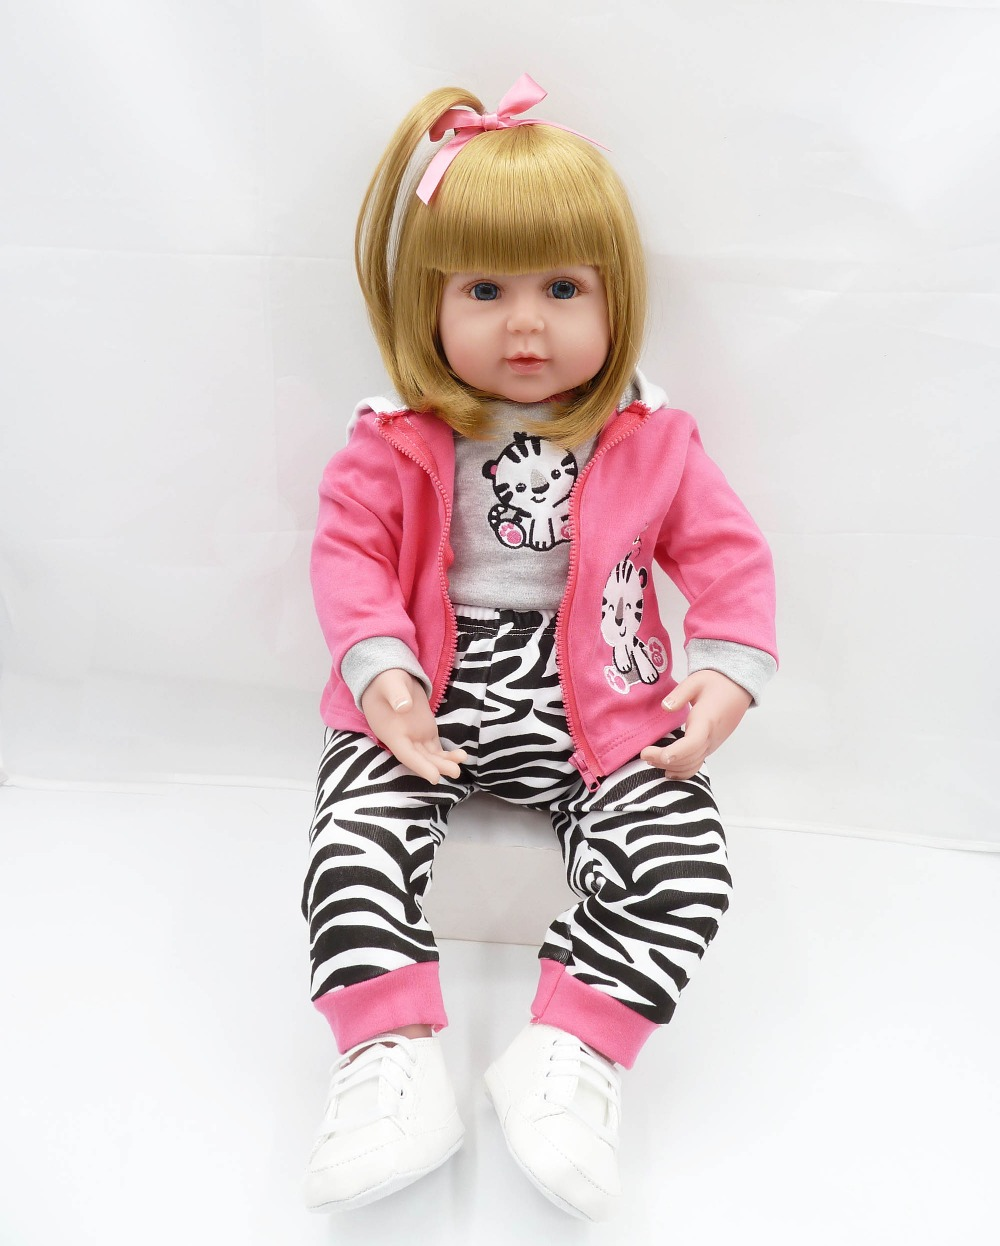 Soft Body Real Life Reborn Toddler Girl Doll with Long Hair Miranda, 24 Inch Lifelike Weighted Snuggle Princess Doll Children